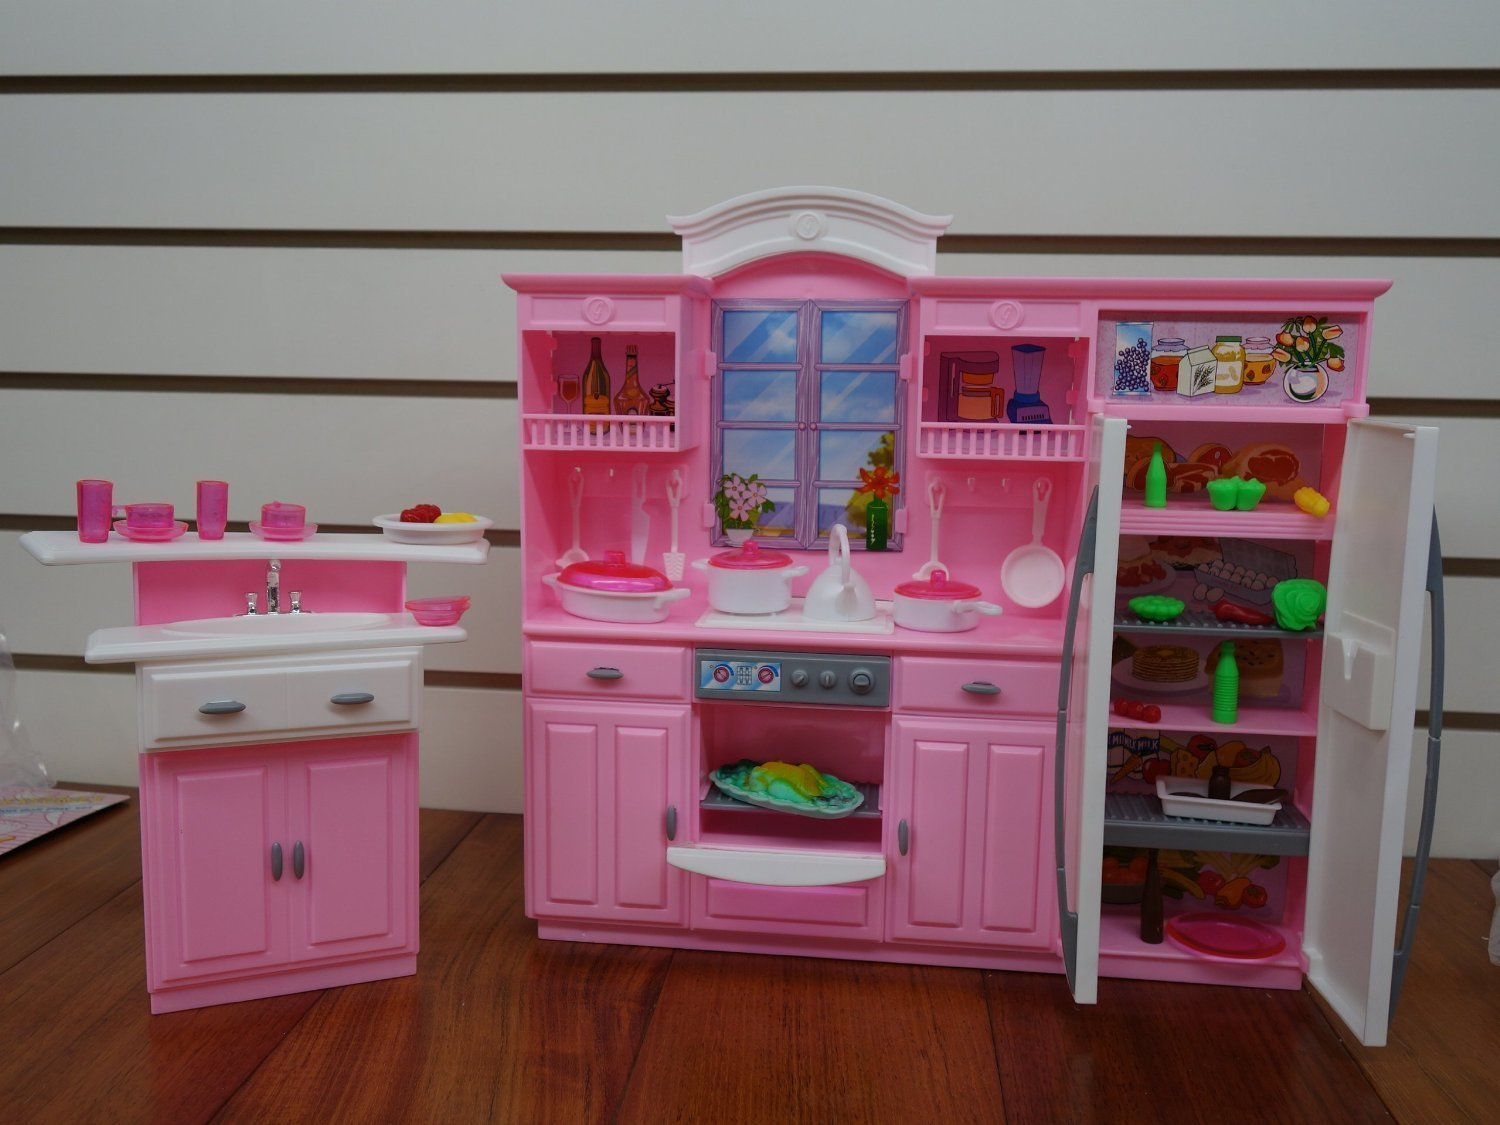 My Fancy Life Dollhouse Furniture - Kitchen Play Set